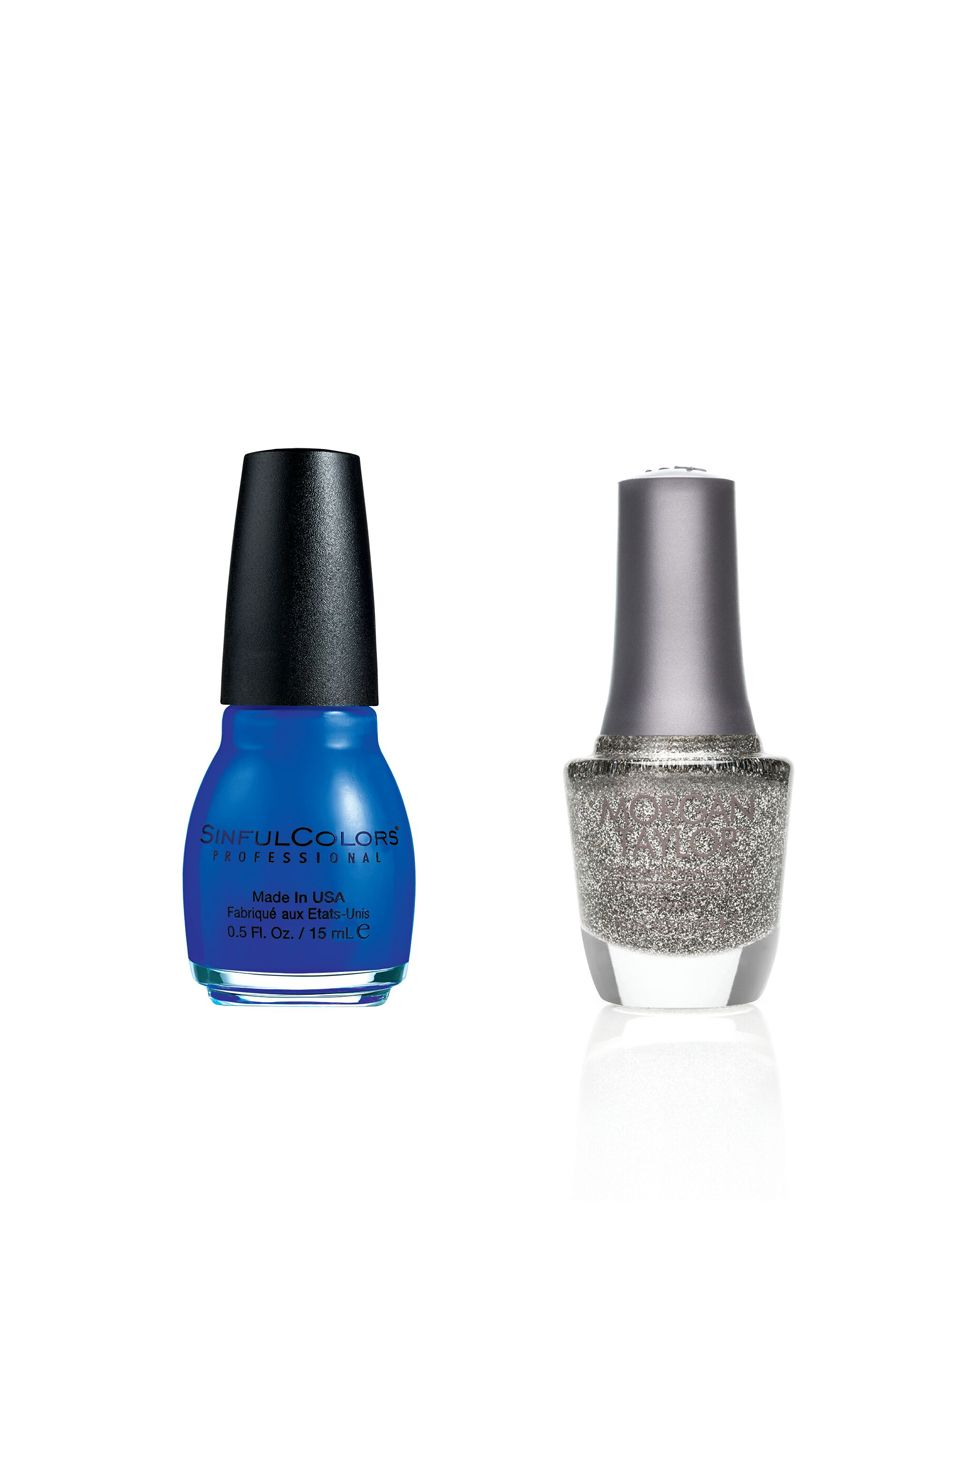 "<p>Sinful Colors Professional Nail Color in Endless Blue ($1.99; <a href=""http://www.target.com/p/sinful-colors-professional-nail-color/-/A-14754639"" target=""_blank"" data-tracking-id=""recirc-text-link"">target.com</a>) + Morgan Taylor Nail Lacquer in Time To Shine ($9; <a href=""https://www.morgantaylorlacquer.com/virtual-salon/glitters,50065_Time%20To%20Shine_glitter,2,0,2"" target=""_blank"" data-tracking-id=""recirc-text-link"">morgantaylorlacquer.com</a>)<span class=""redactor-invisible-space"" data-verified=""redactor"" data-redactor-tag=""span"" data-redactor-class=""redactor-invisible-space""></span></p>"